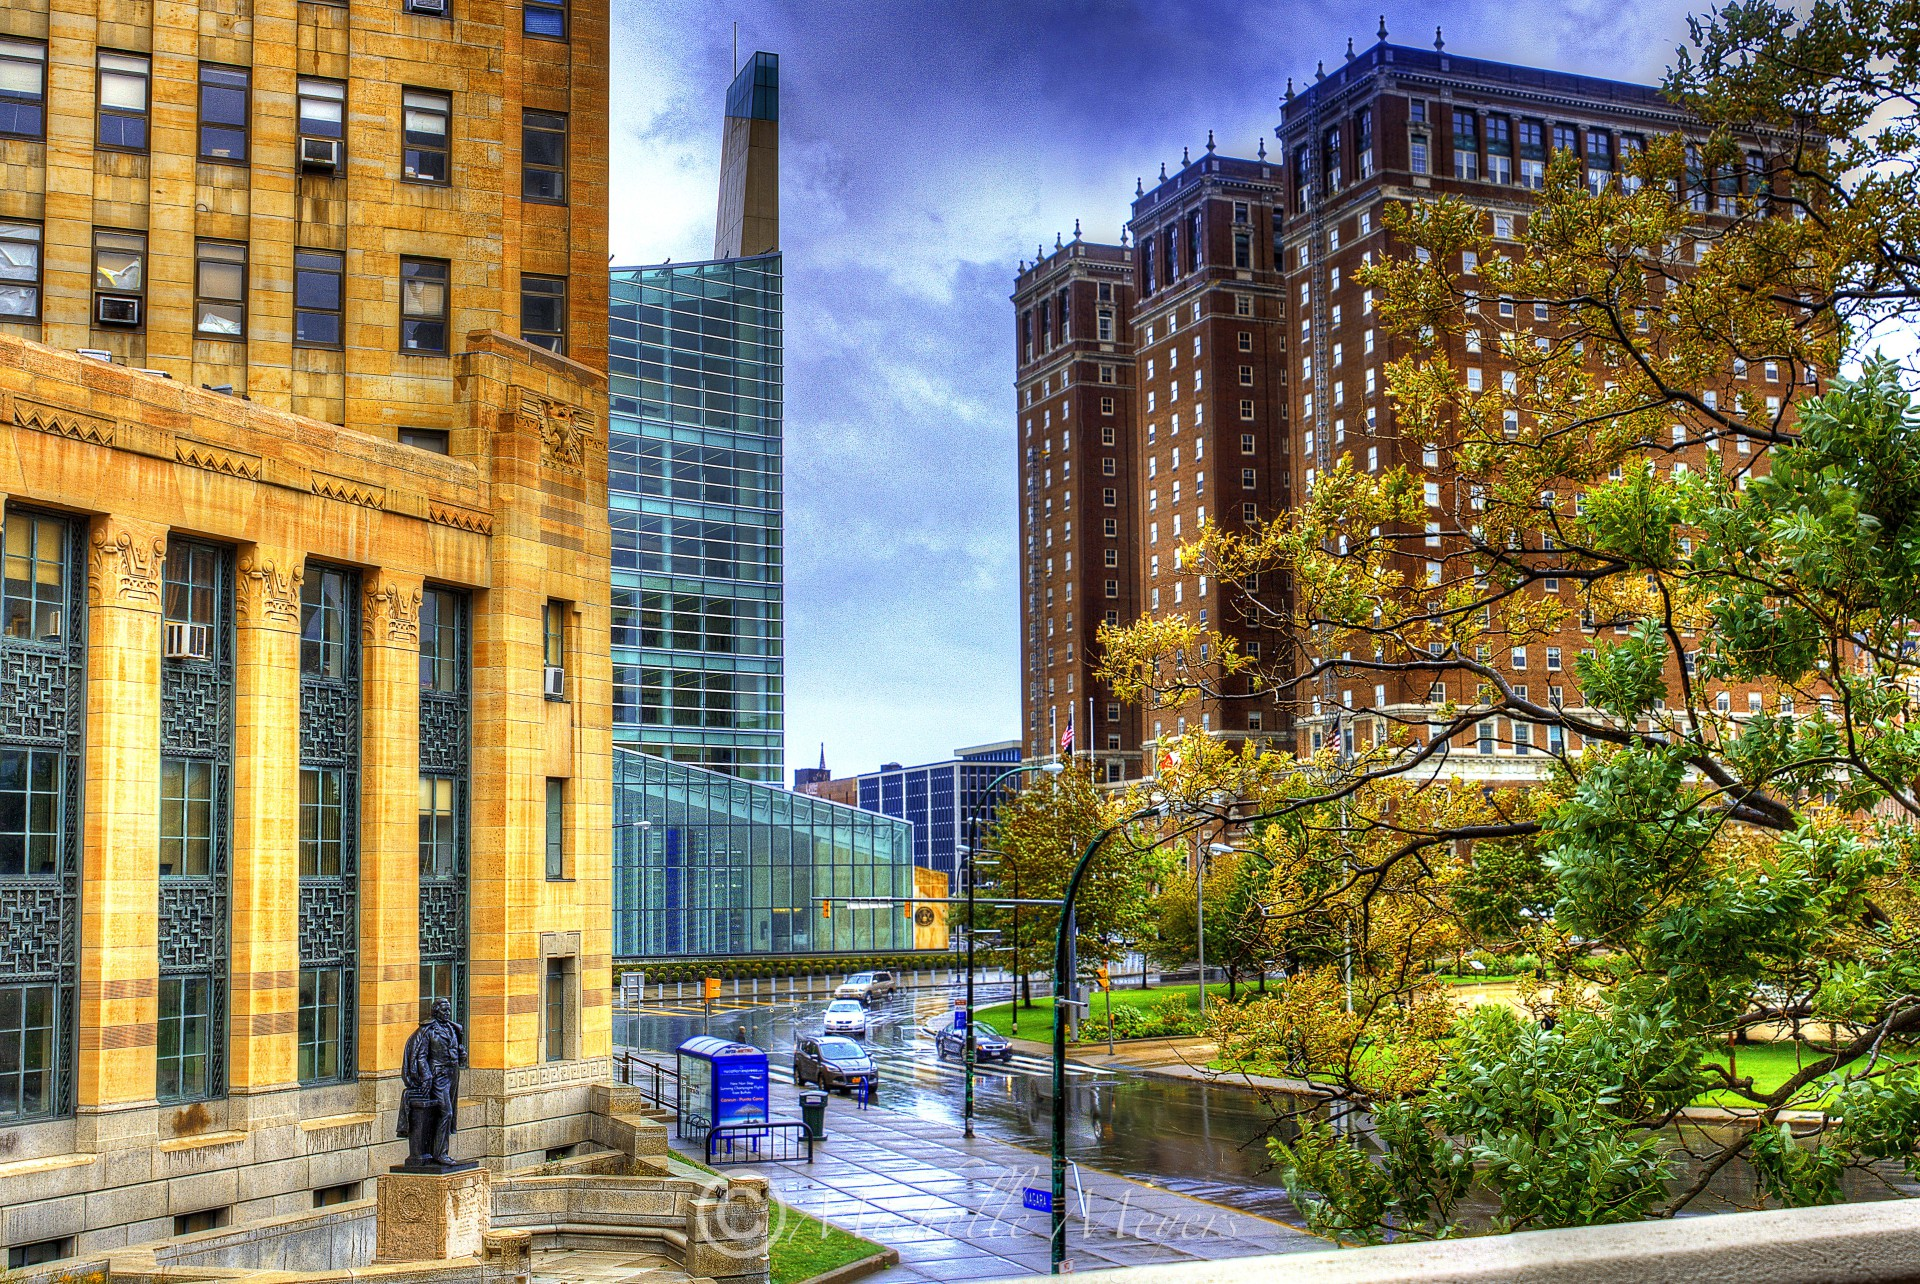 Niagara Square Buildings